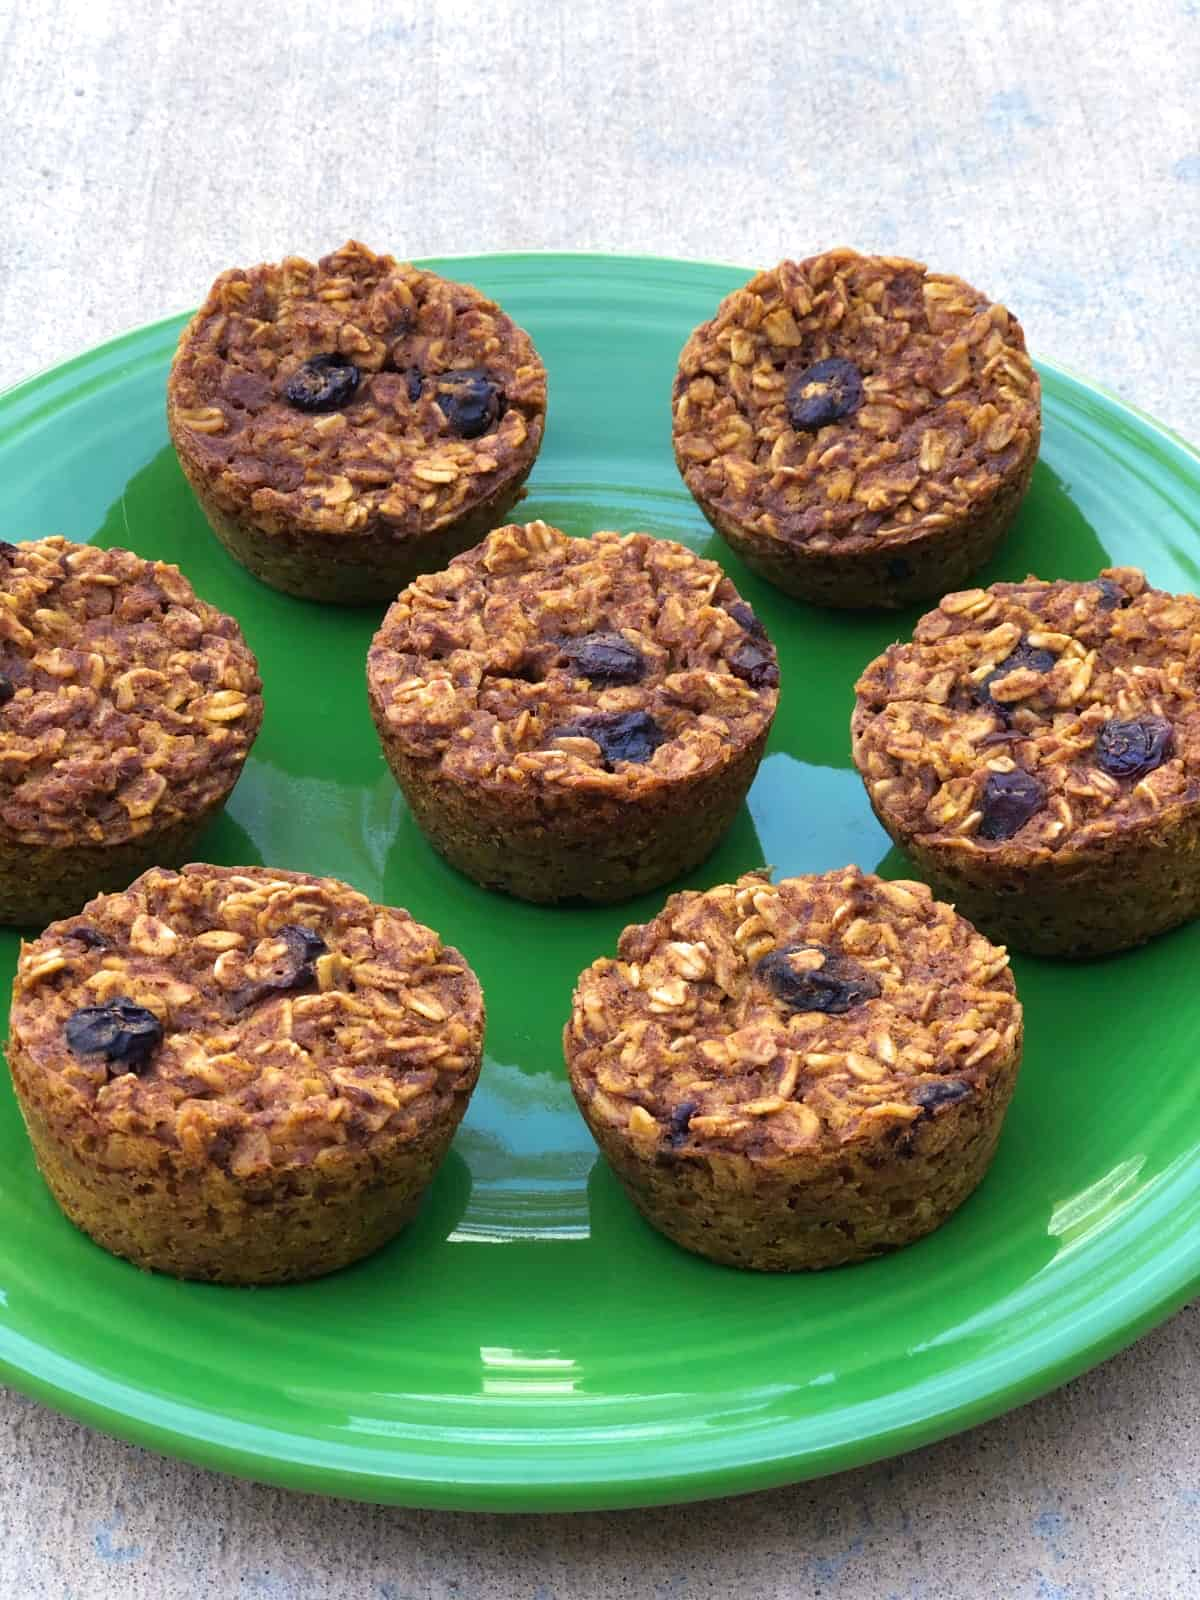 Freshly baked cranberry pumpkin oatmeal muffin cups on green plate.